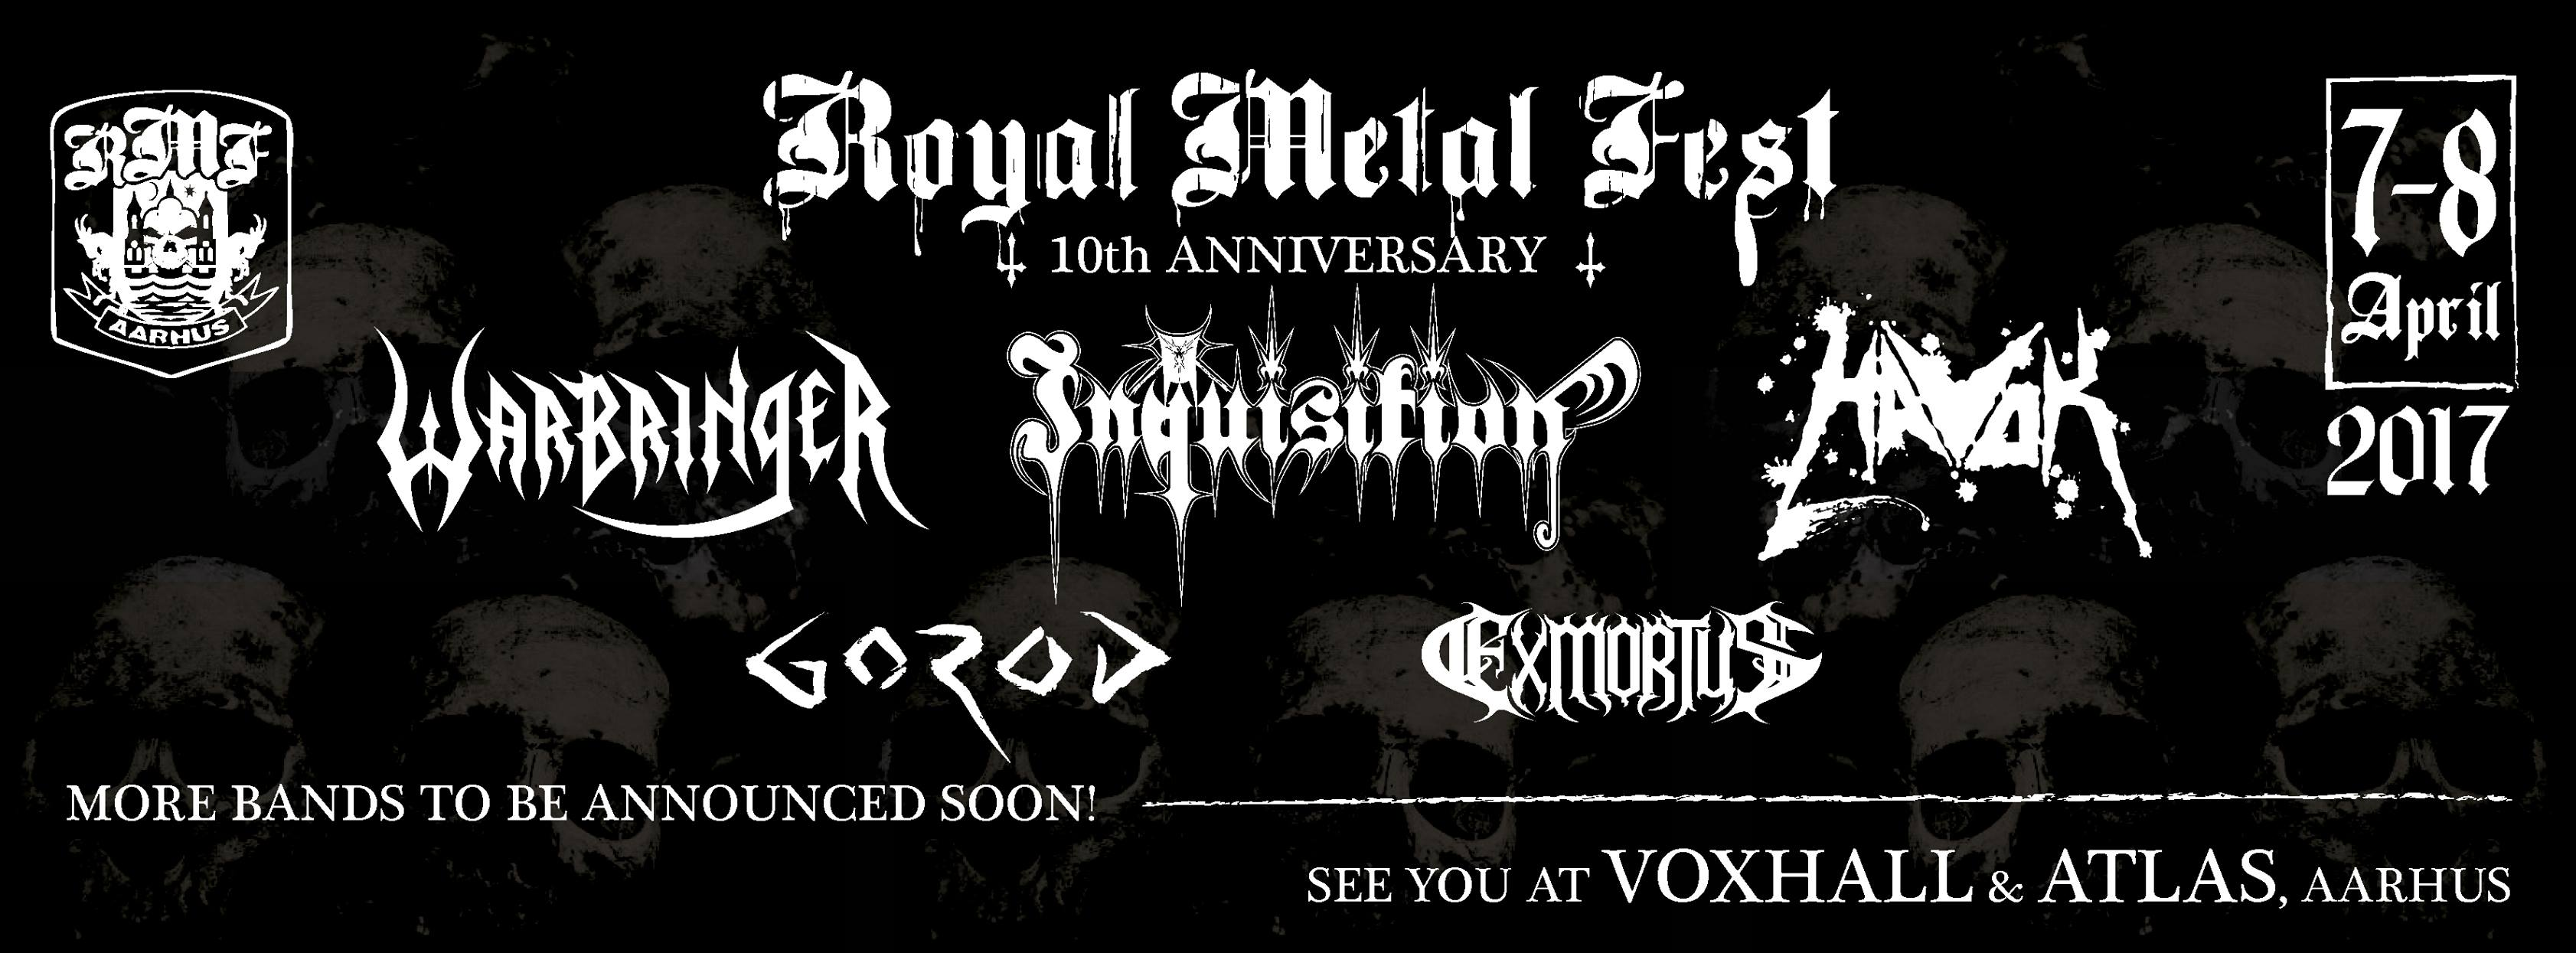 Royal Metal Festival 2017